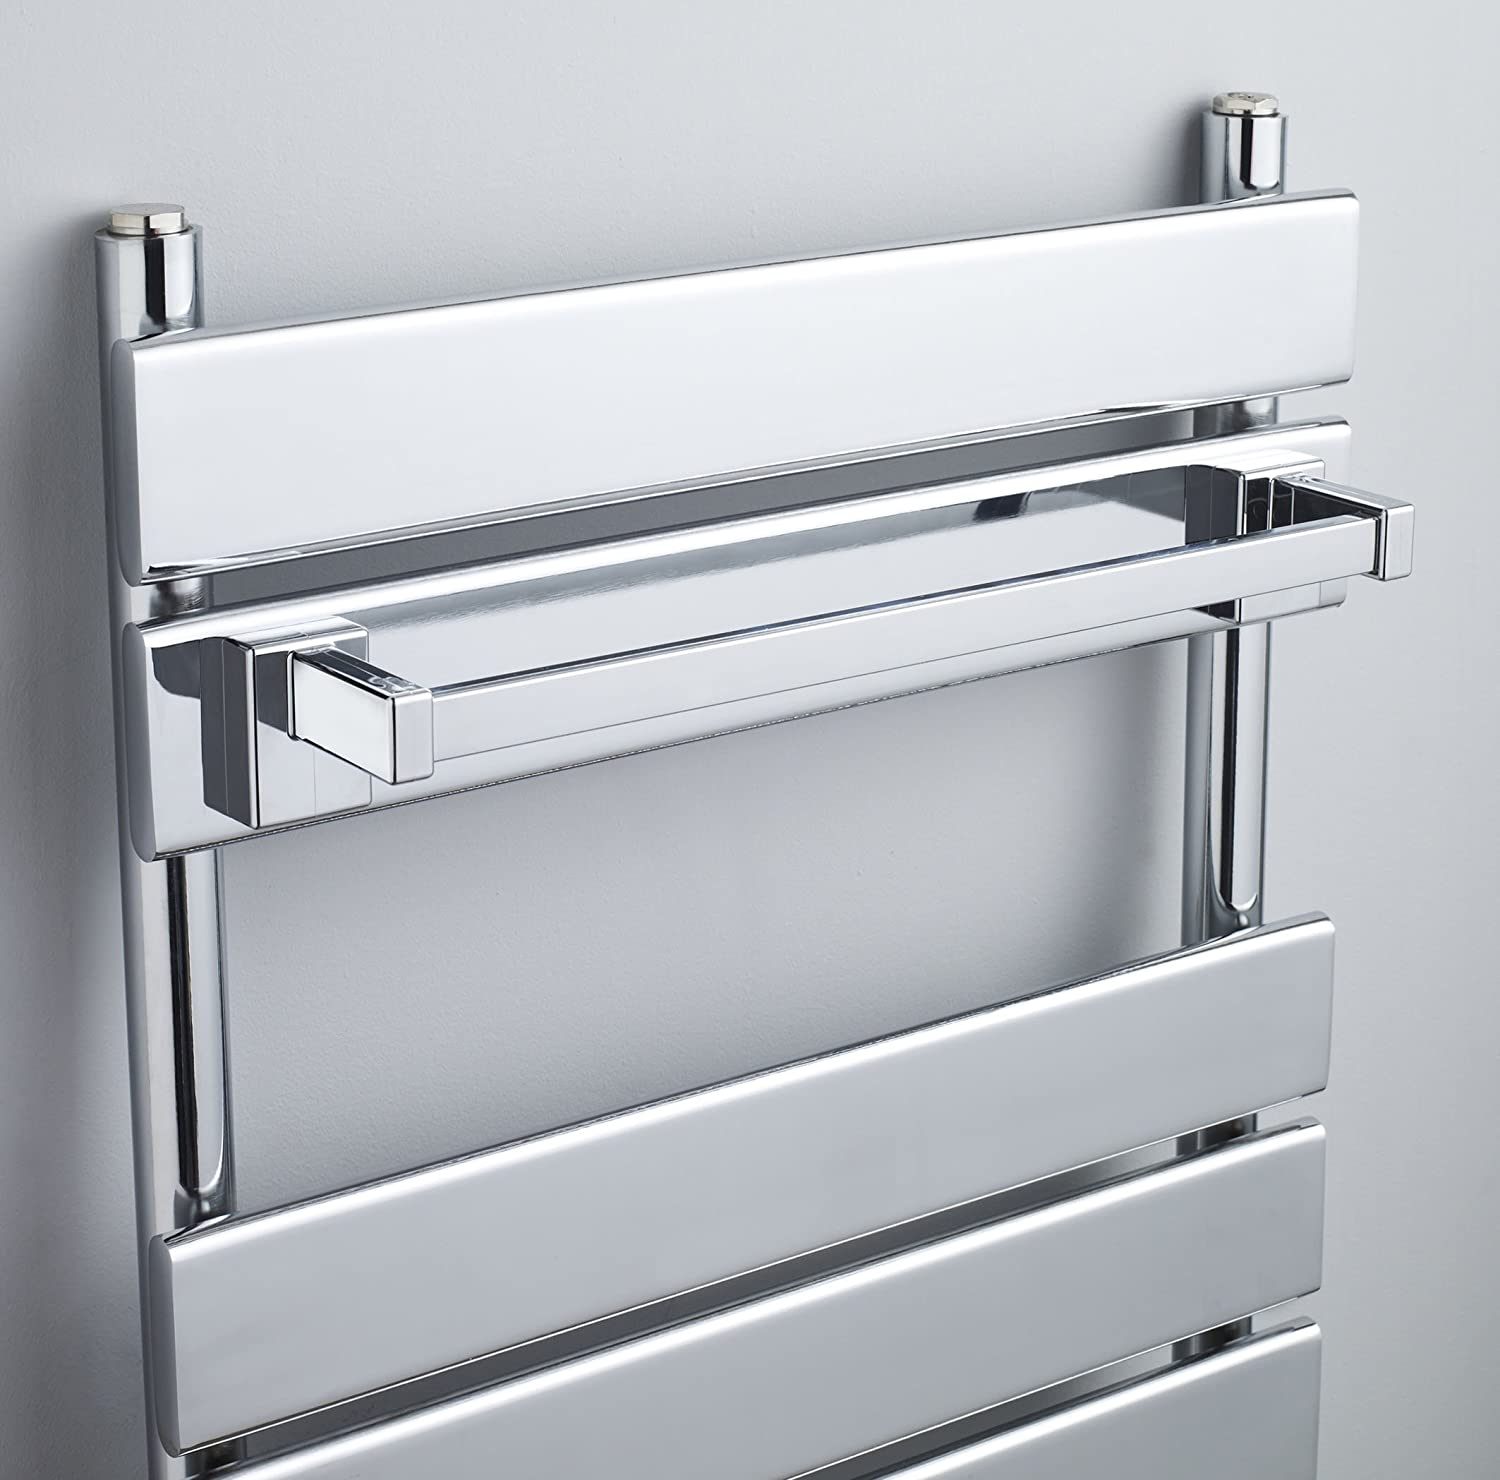 amazing hudson reed acc magnetic towel rail chrome amazoncouk diy u tools with fr hudsonreed com. Black Bedroom Furniture Sets. Home Design Ideas